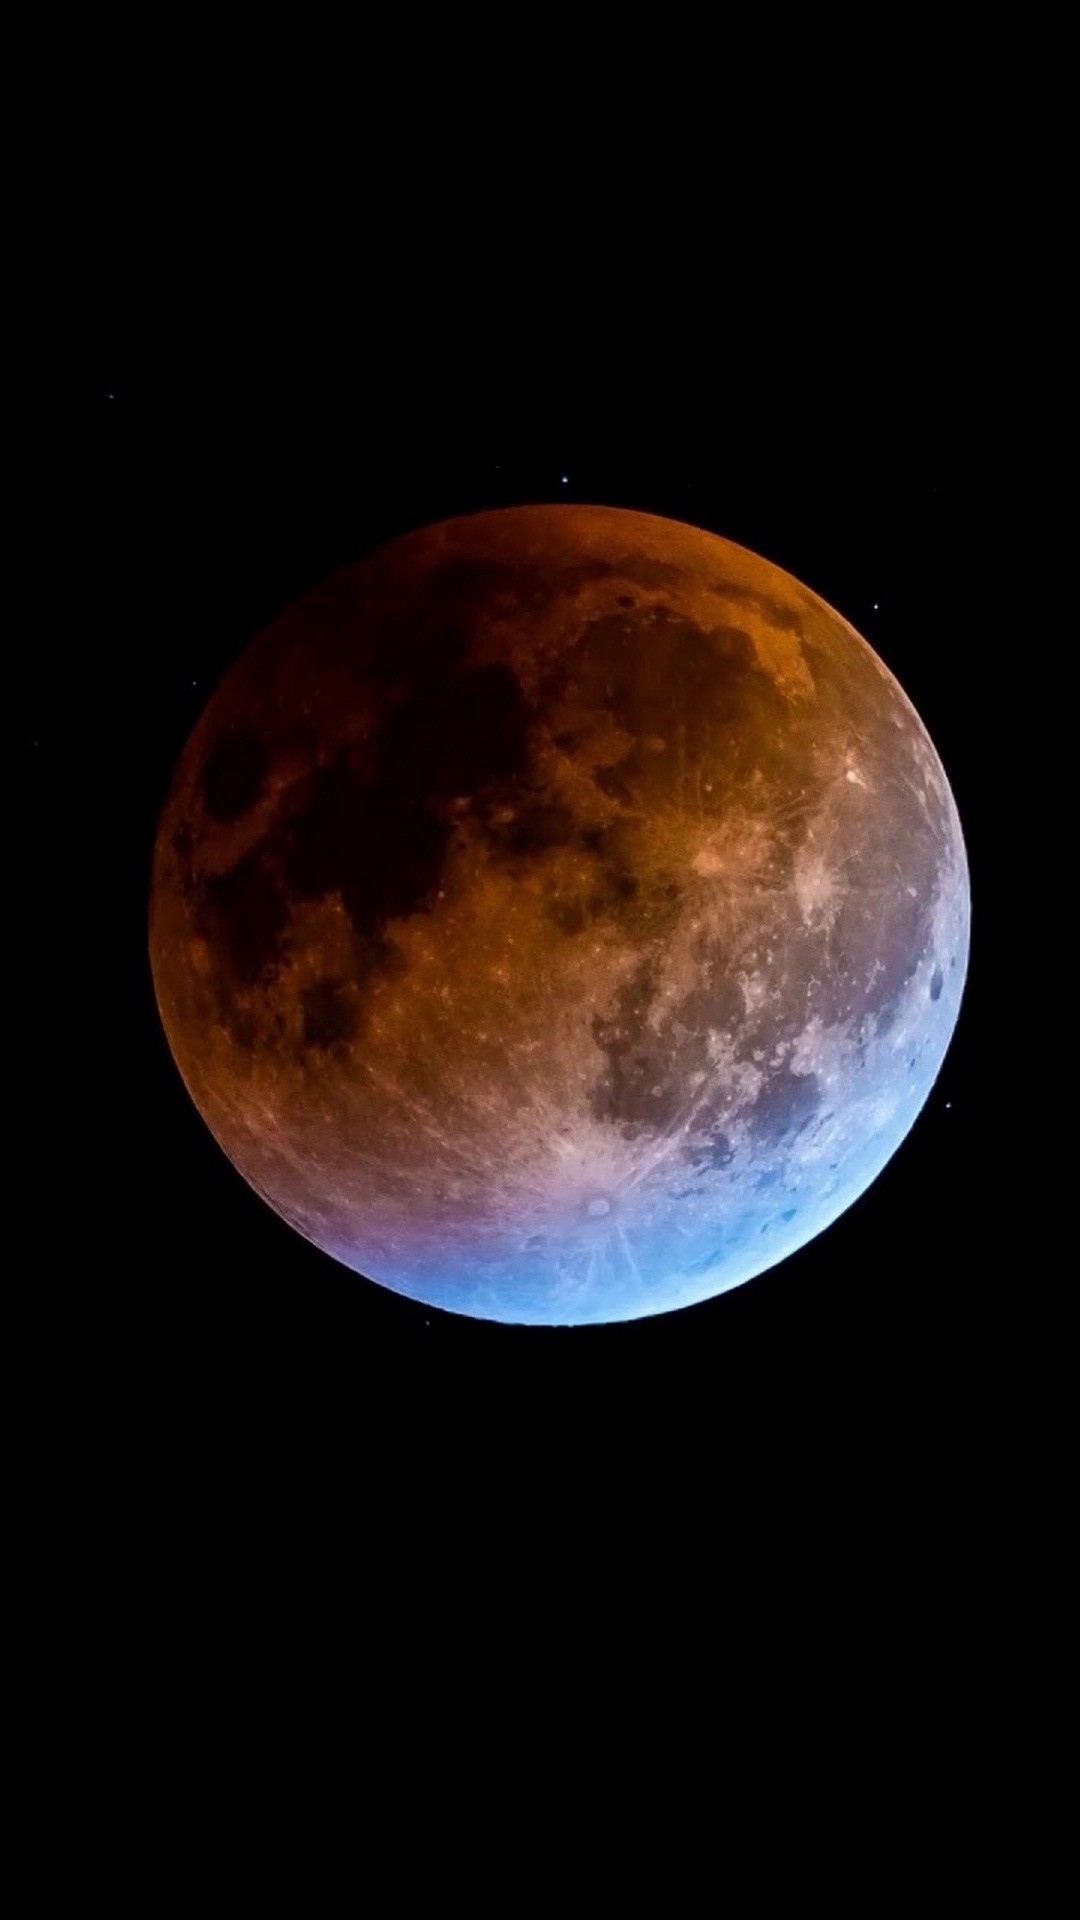 Super Blue Blood Moon Android Wallpaper   2019 Android Wallpapers 1080x1920